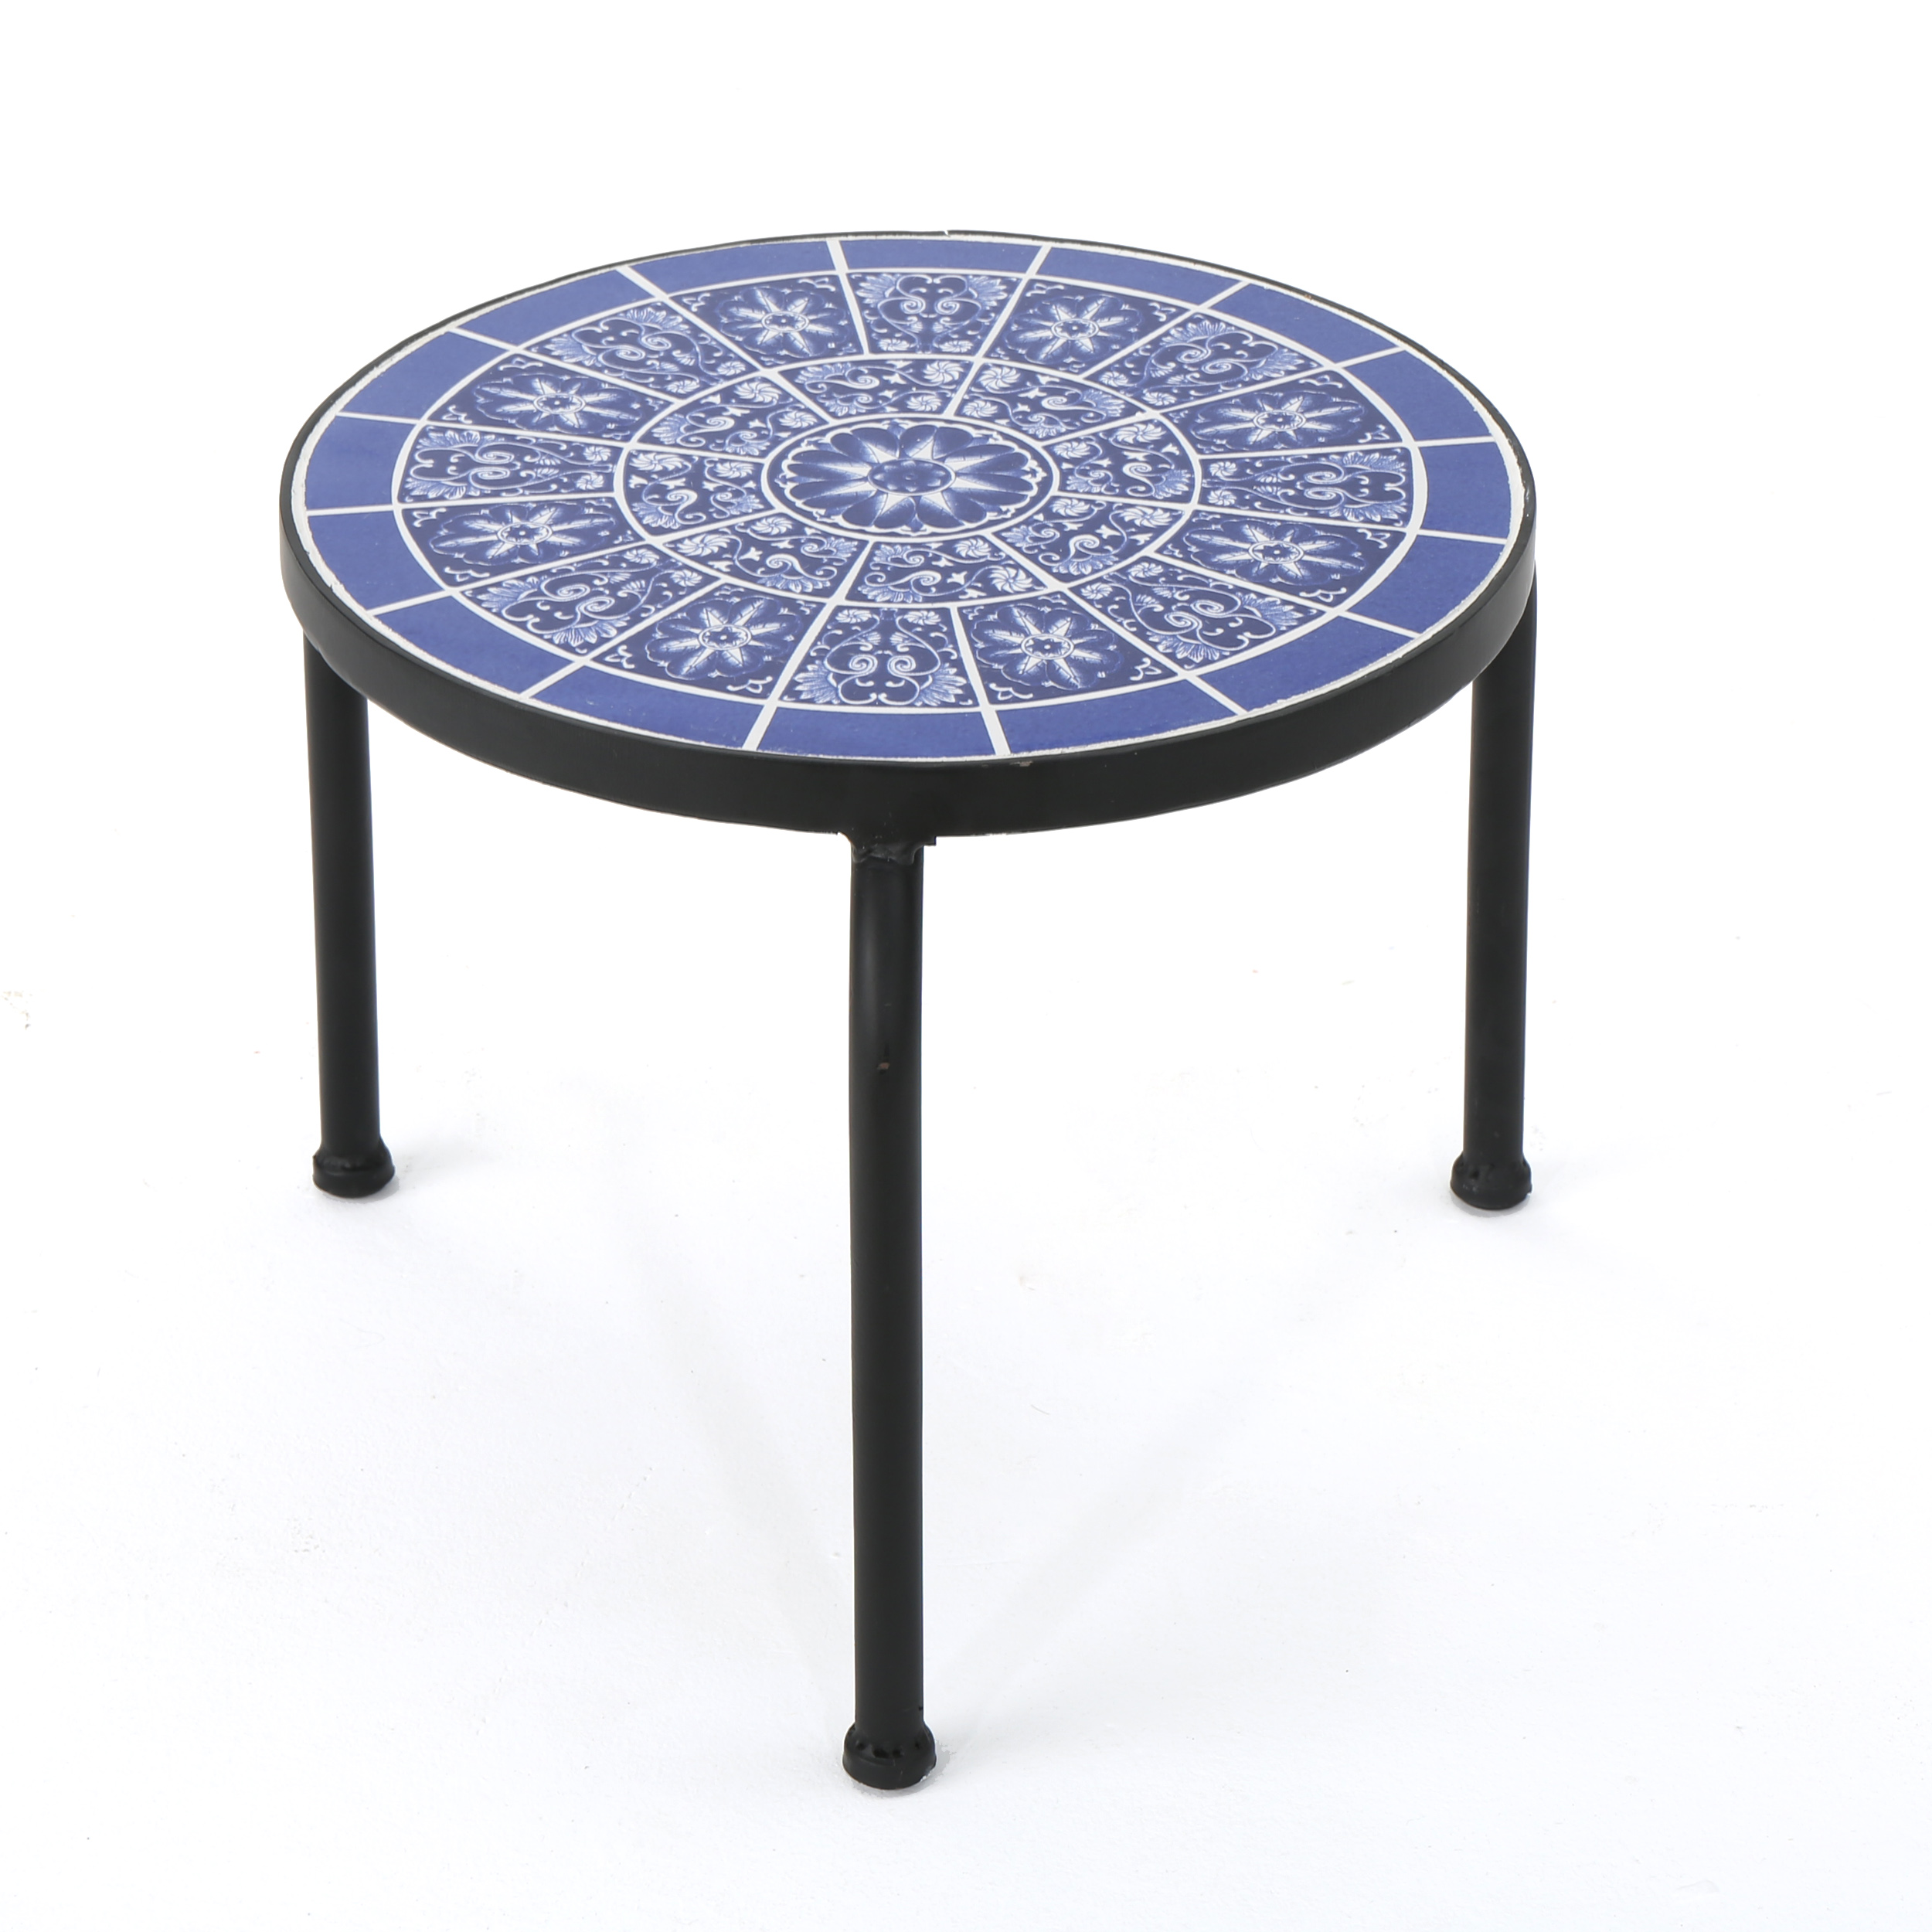 soleil outdoor ceramic tile side table with iron frame blue and white coffee dimensions threshold rustic accent antique round wood nate berkus furniture best drum throne foyer